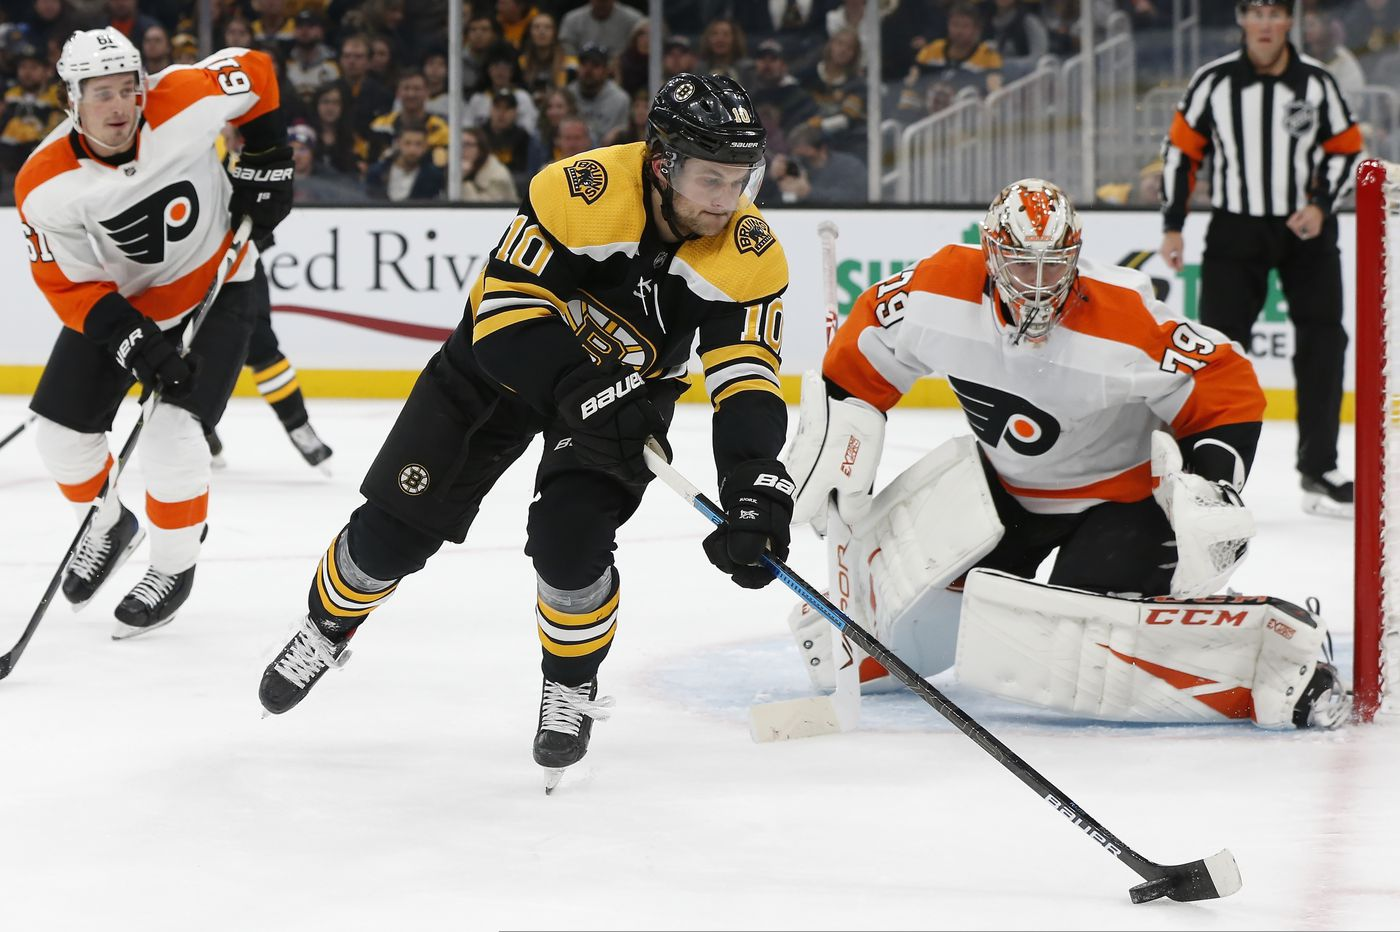 The Flyers have an unfamiliar edge on opponents. Carter Hart's brilliant night against the Bruins proves it. | Mike Sielski